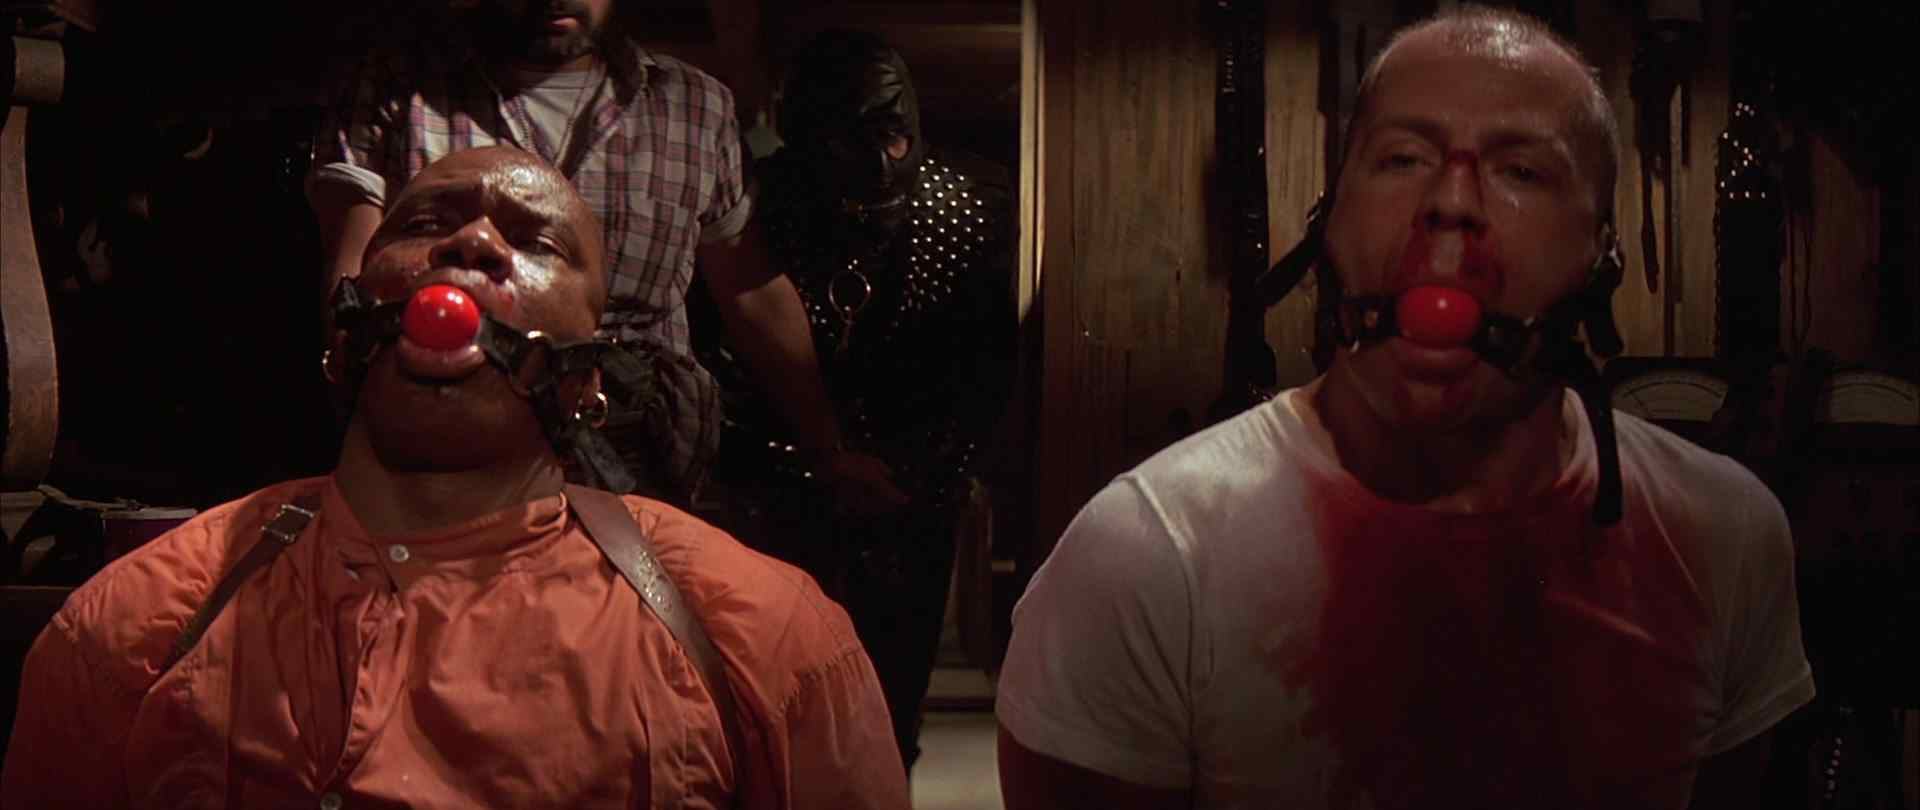 Bruce Willis and Ving Rhames in Pulp Fiction